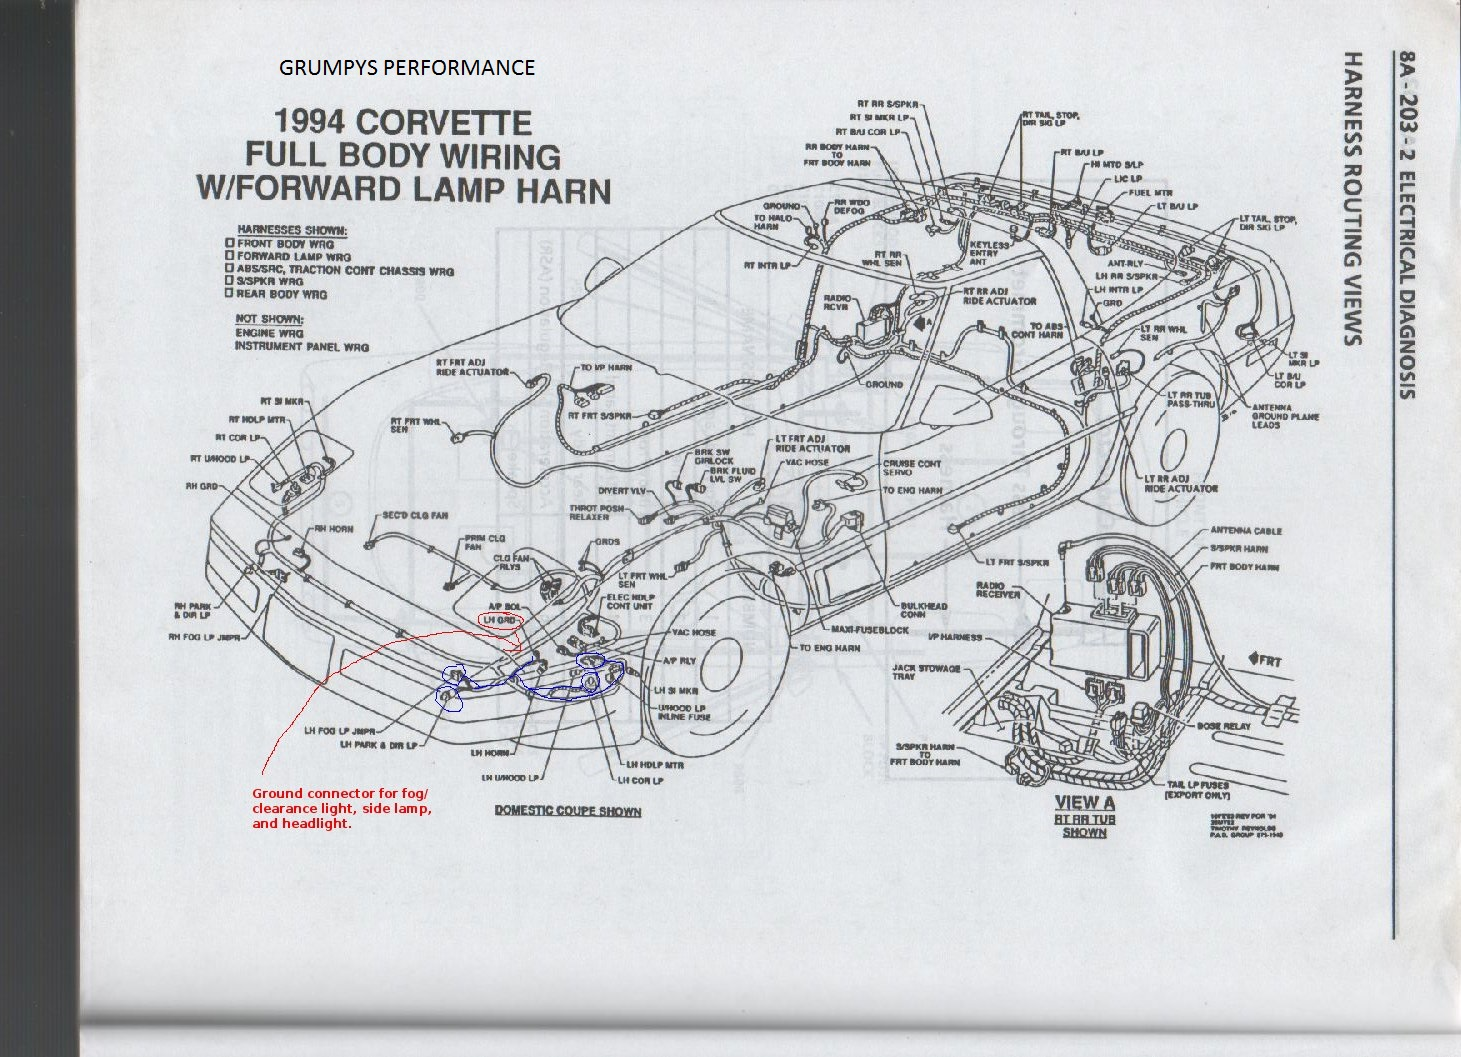 hight resolution of 1994 corvette engine diagram wiring diagrams bib 1994 corvette engine wiring harness 1994 corvette engine wiring harness